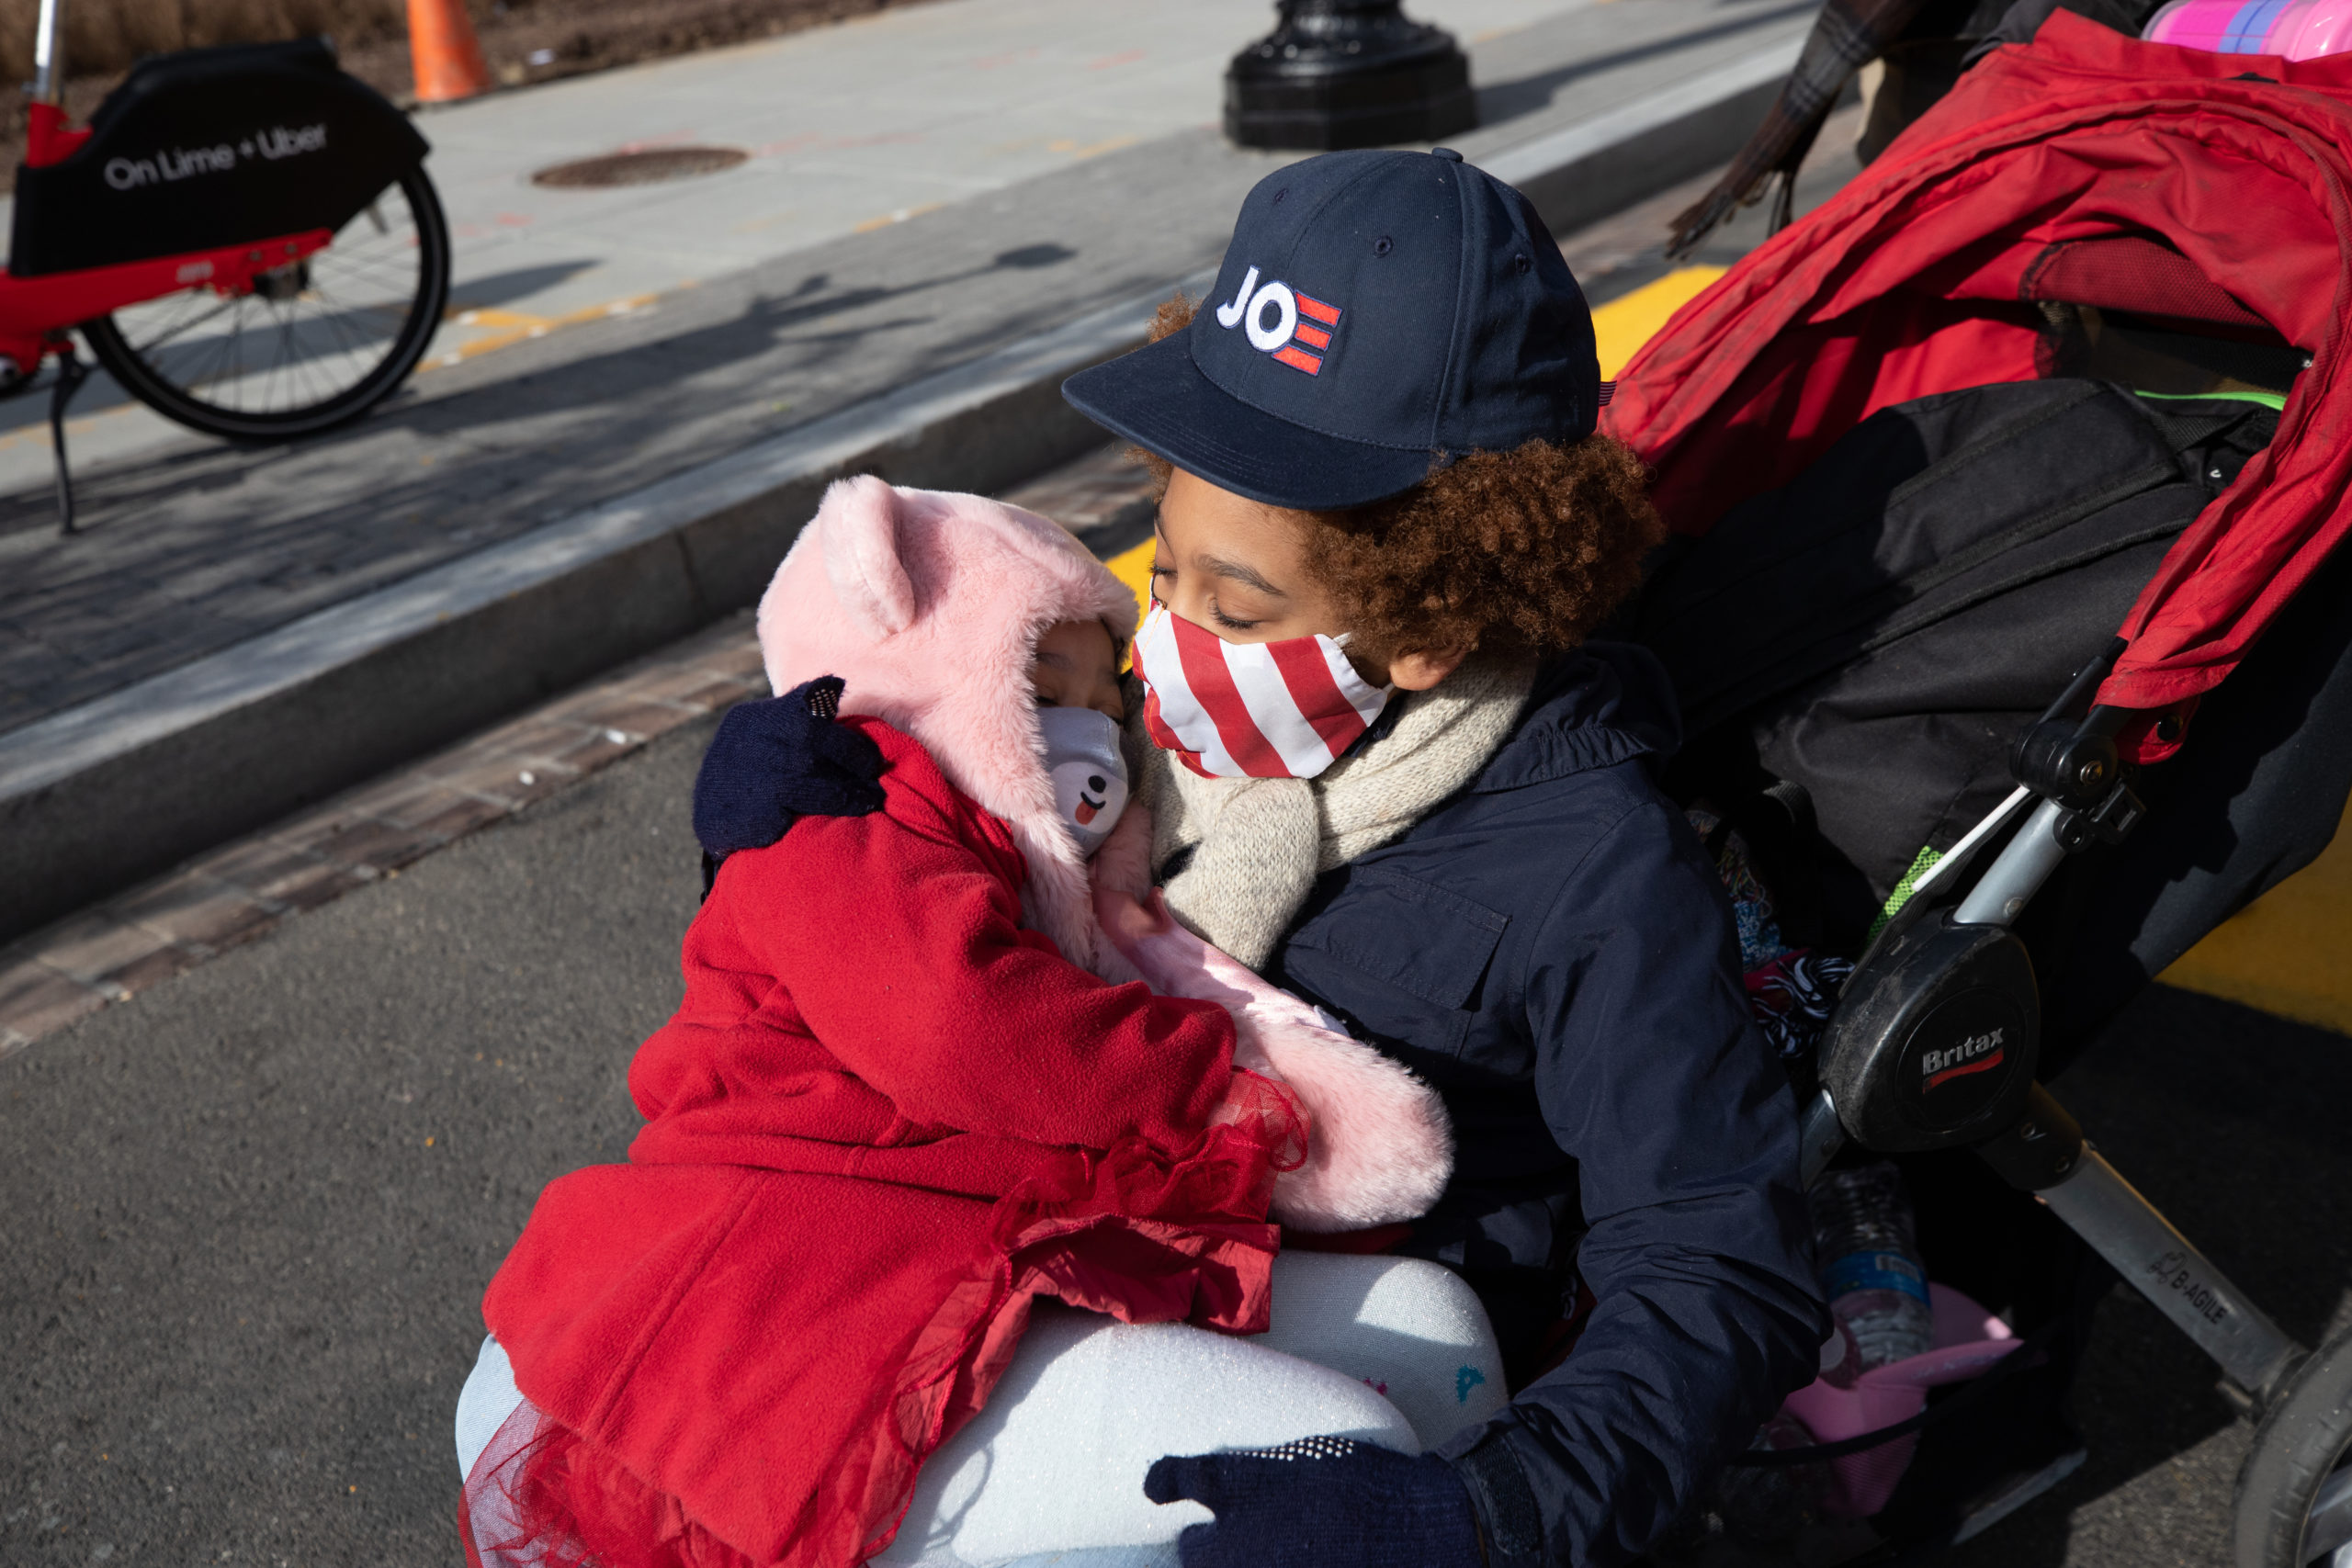 Two children hugged in a stroller in Black Lives Matter Plaza in Washington, D.C. on Jan. 20, 2021. (Kaylee Greenlee - Daily Caller News Foundation)